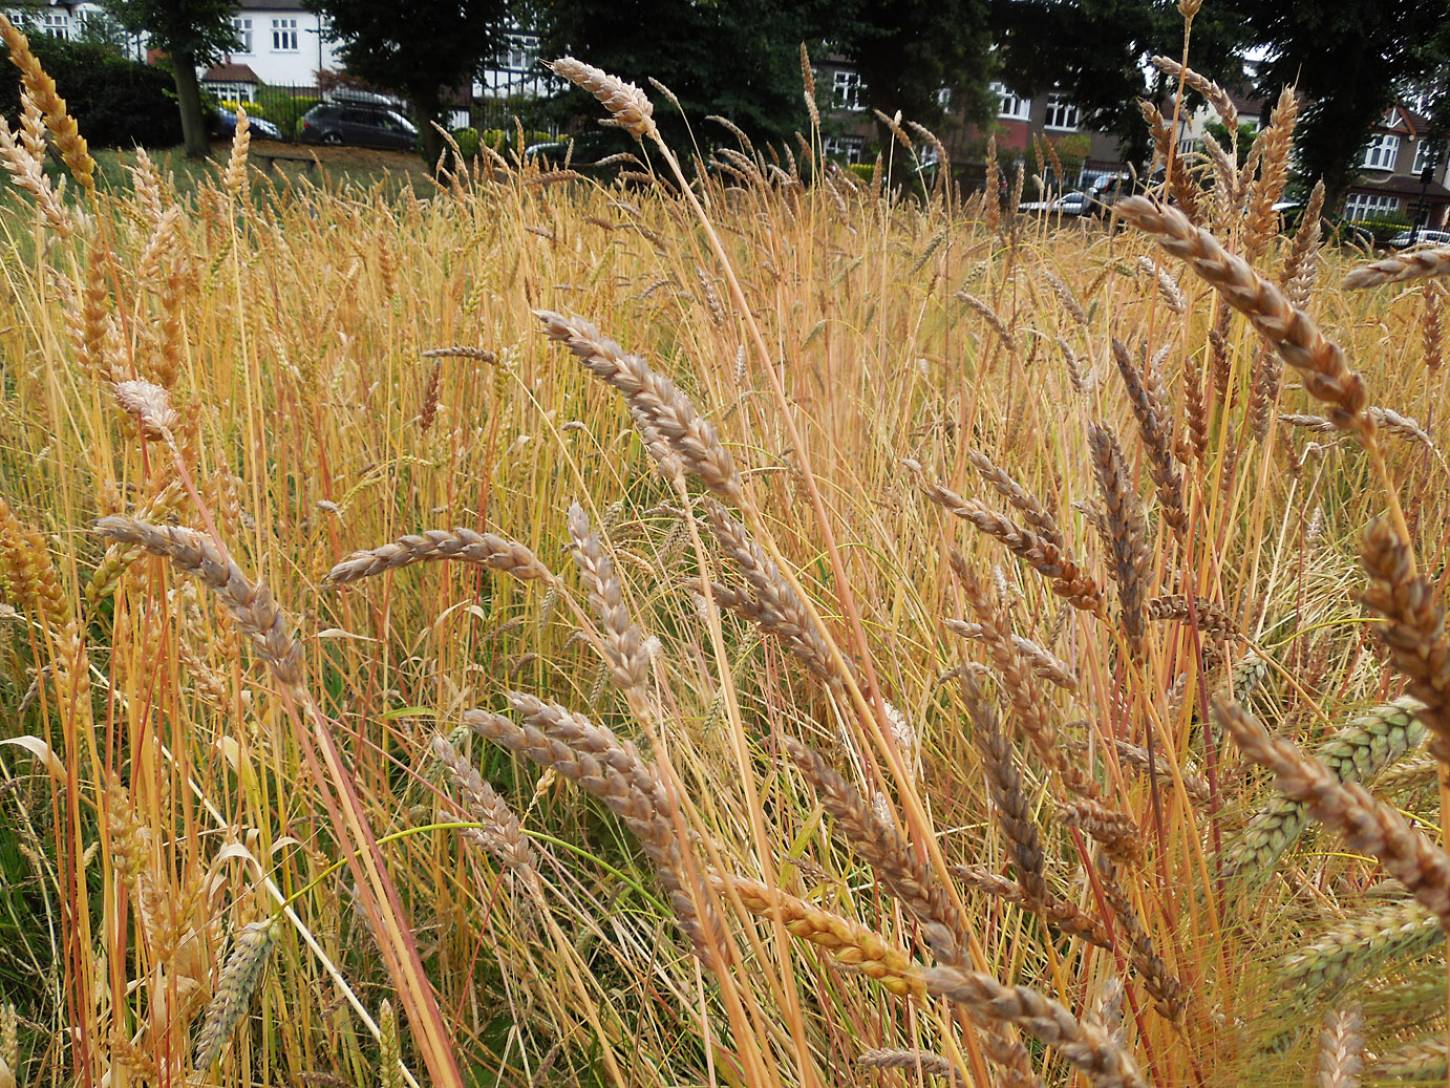 Ruskin Park plot review #3, Orange Devon Blue Rough Chaff with Old Kent Red behind - 1:18pm&nbsp;25<sup>th</sup>&nbsp;Jul.&nbsp;'16